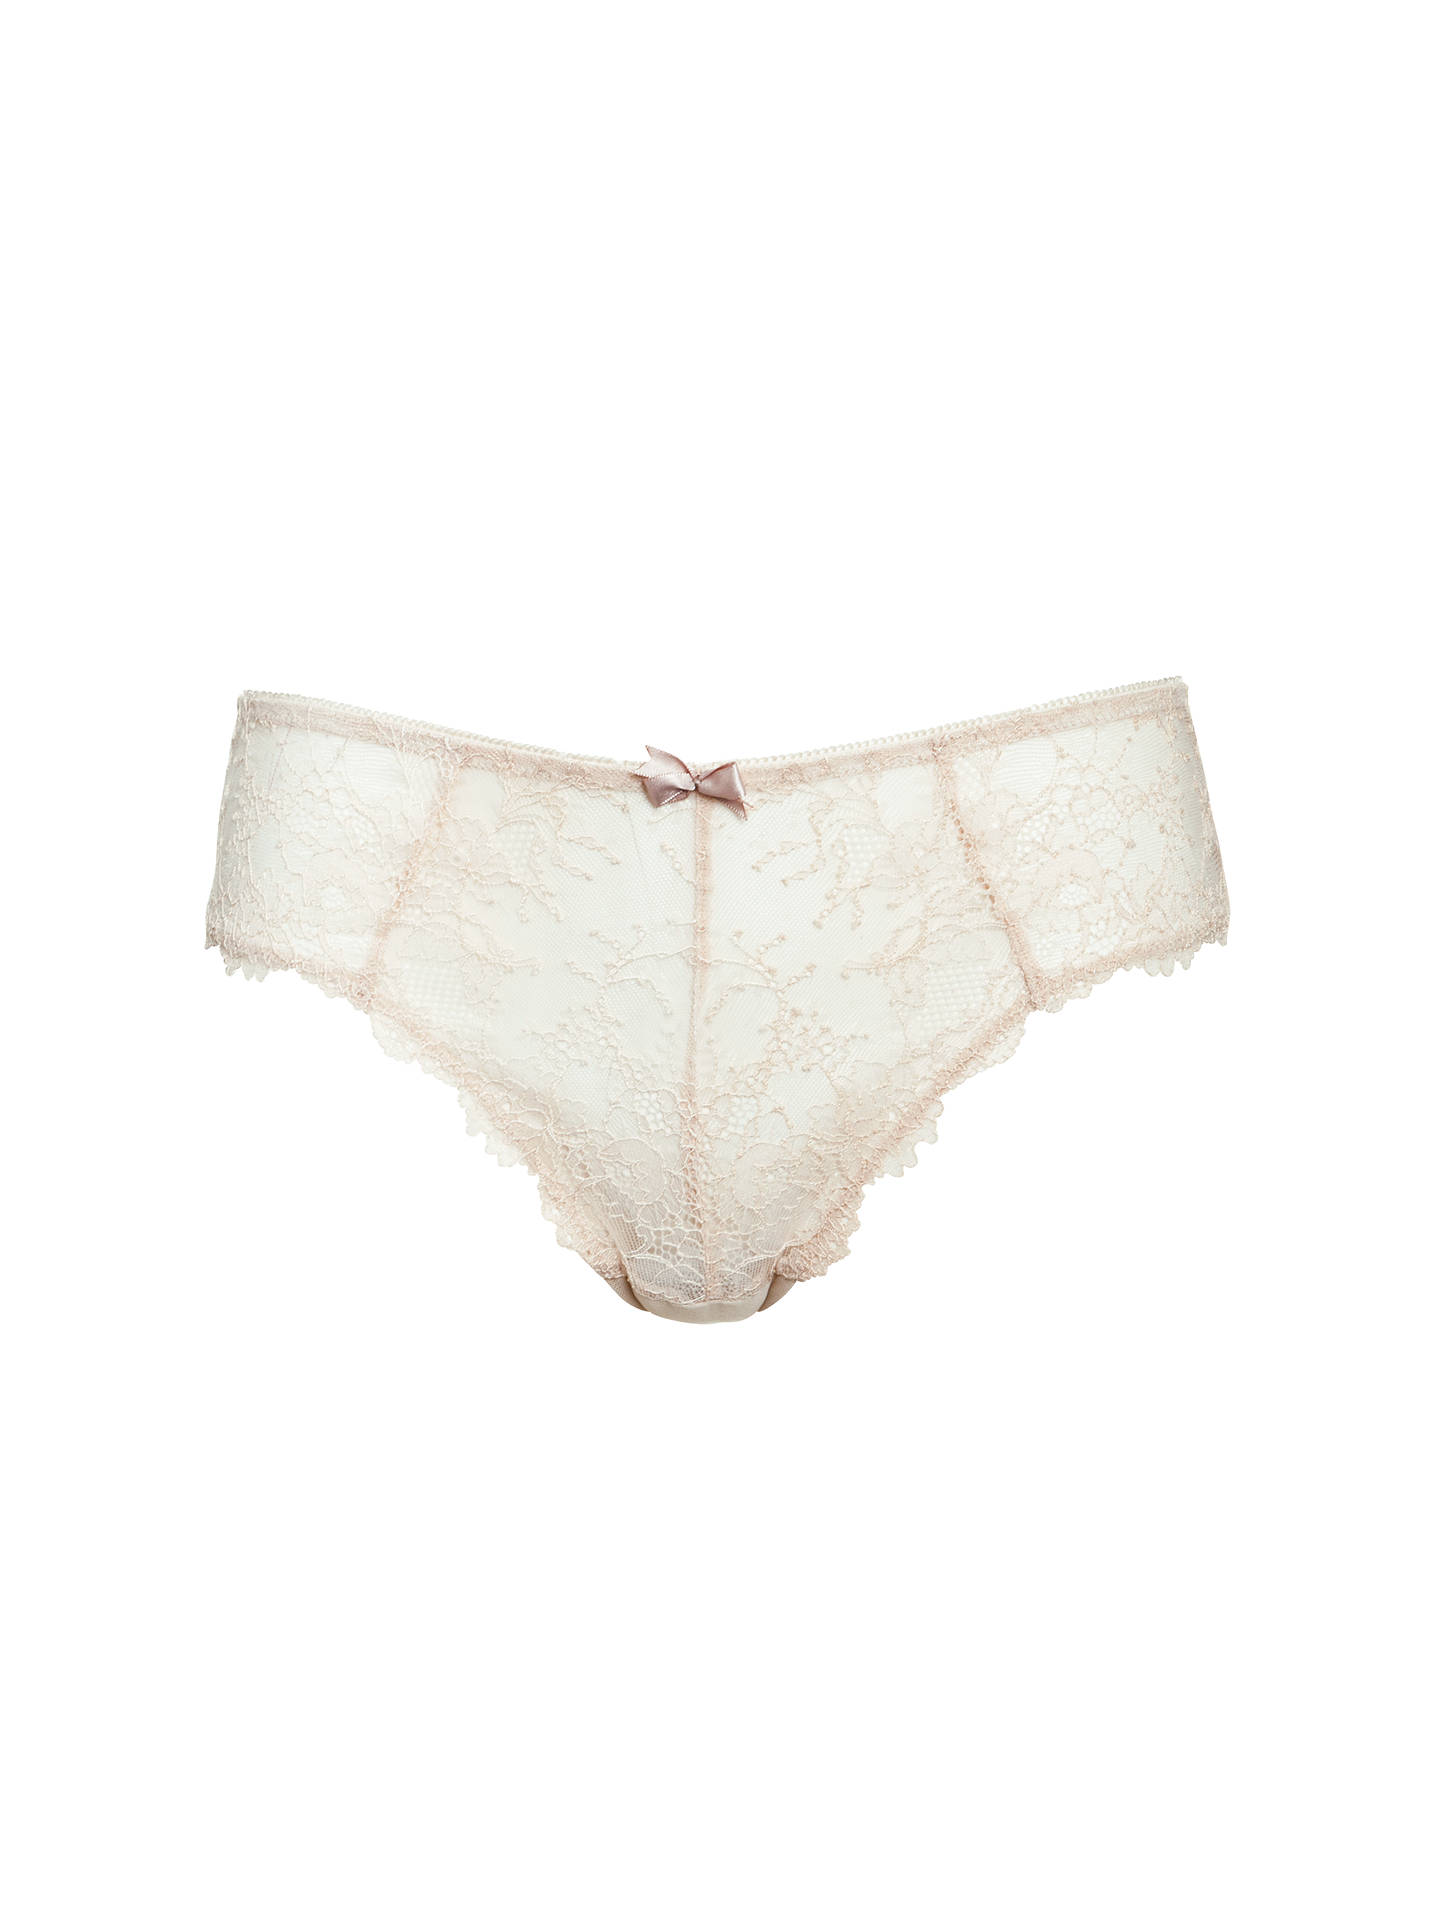 c4b4d1fabfdc Buy COLLECTION by John Lewis Genevieve Lace Briefs, Nude, 8 Online at  johnlewis.